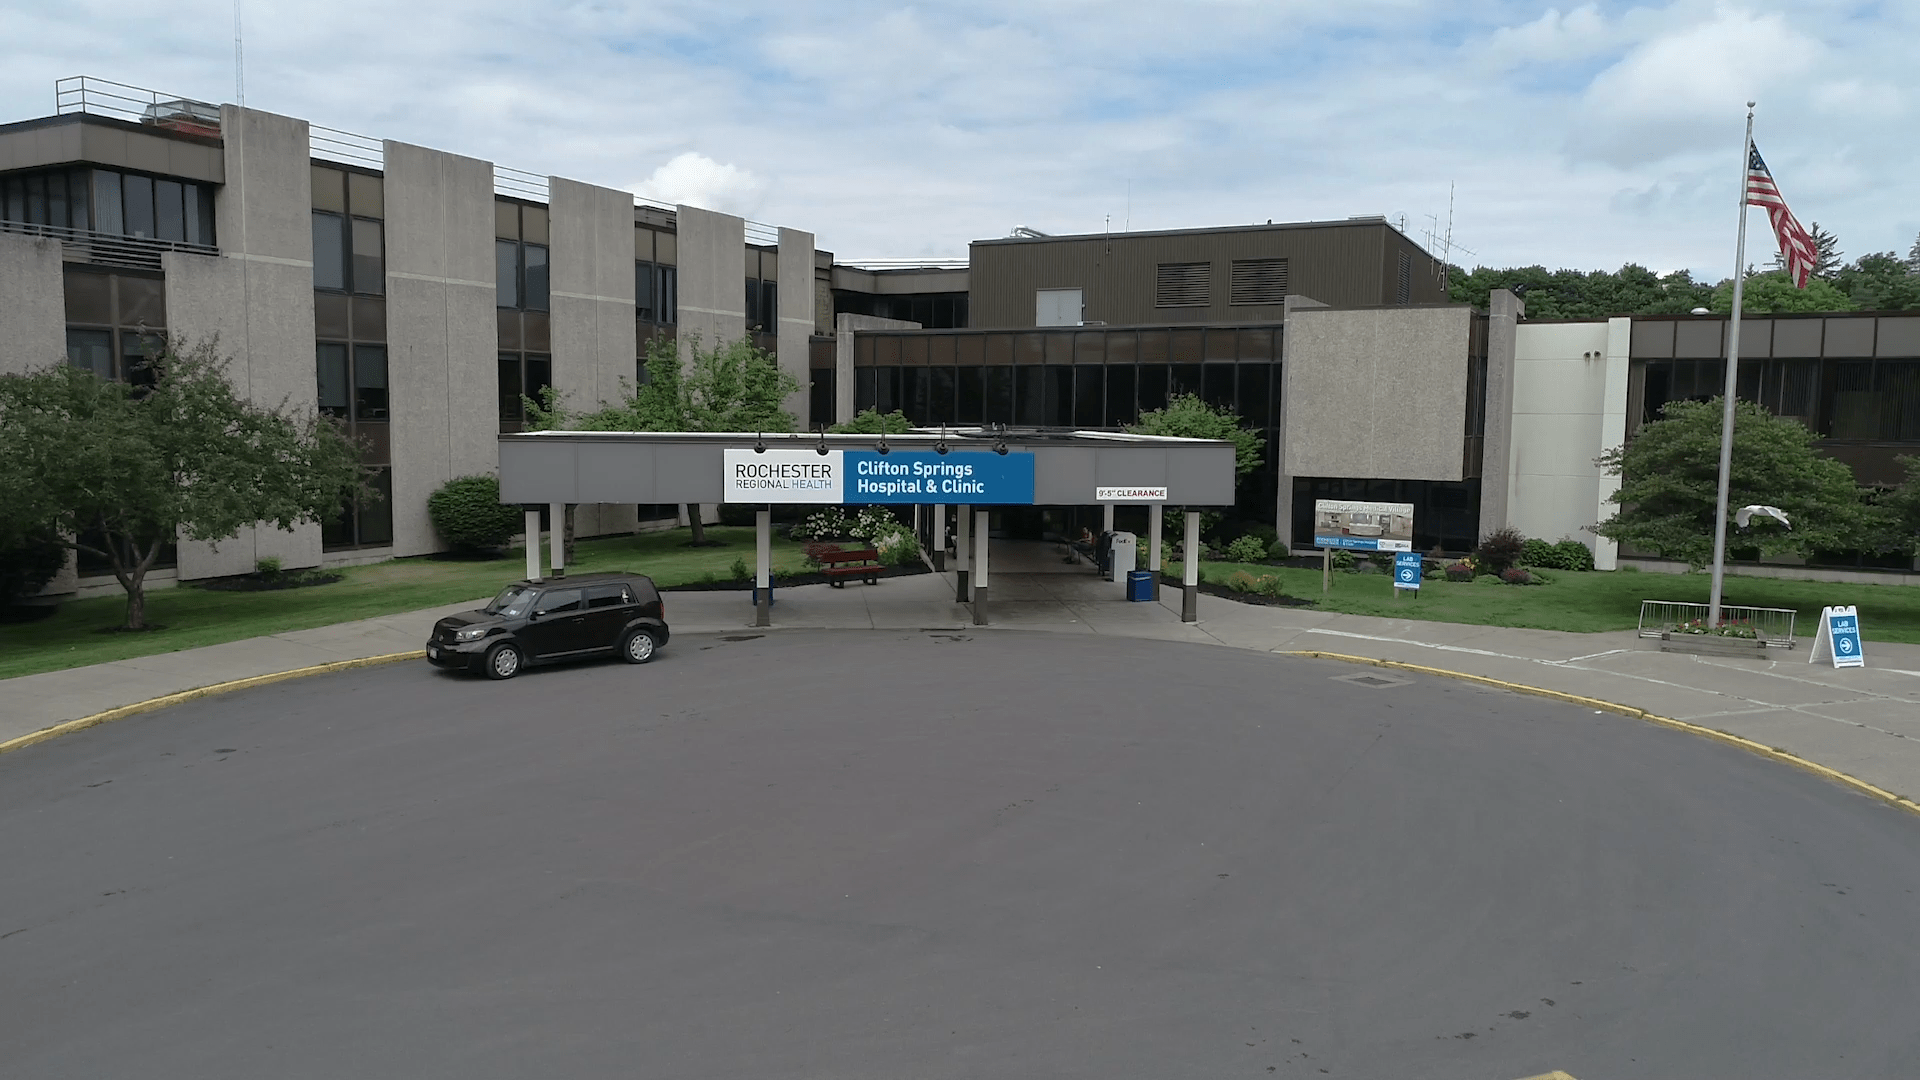 Eight new cases of COVID-19 at nursing home in Clifton Springs